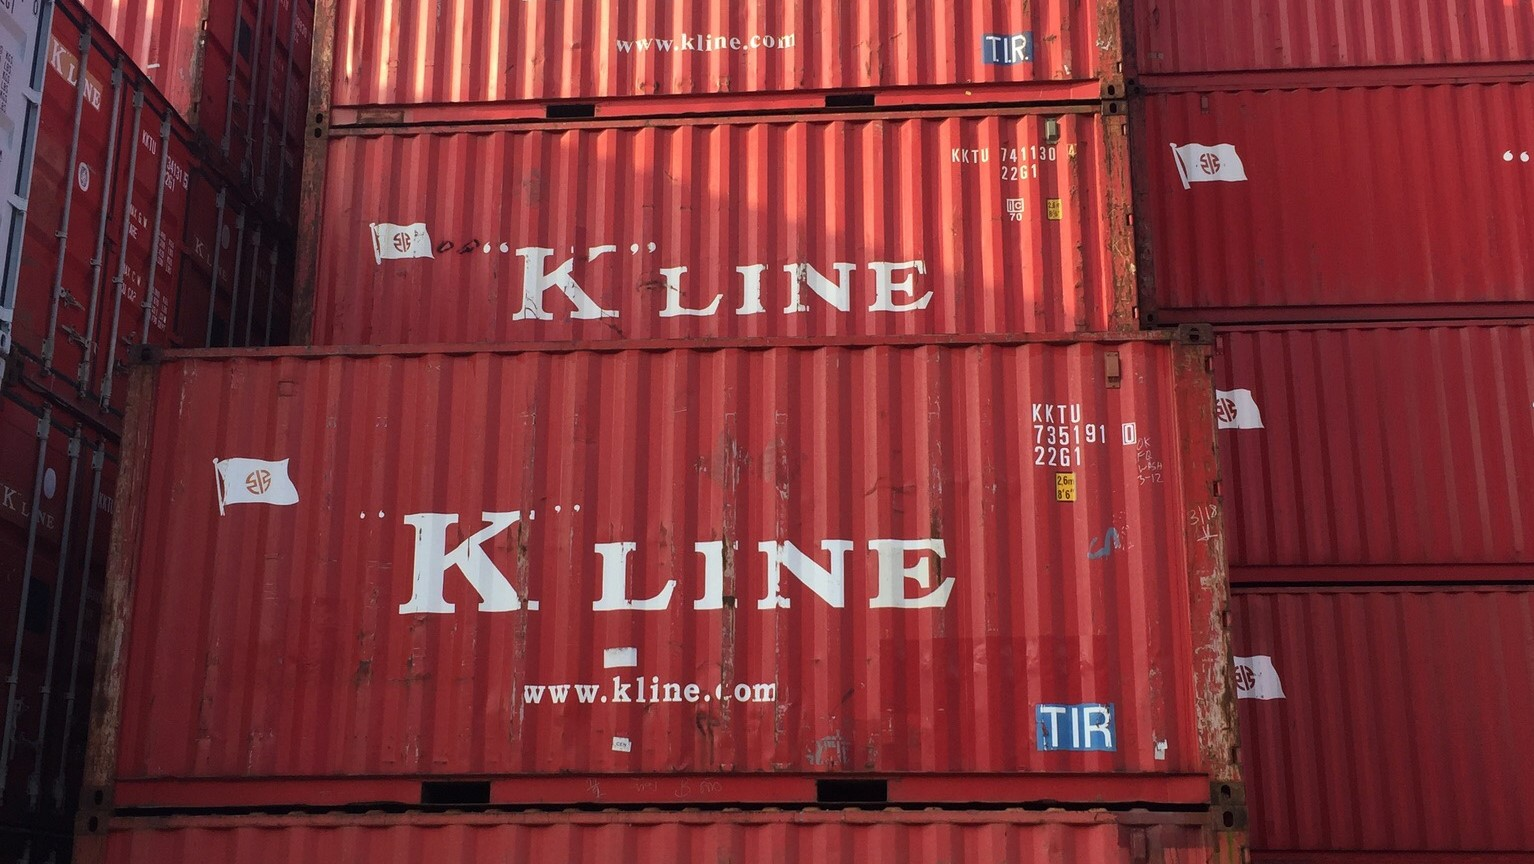 K Line starts structural reform as huge losses reported 1